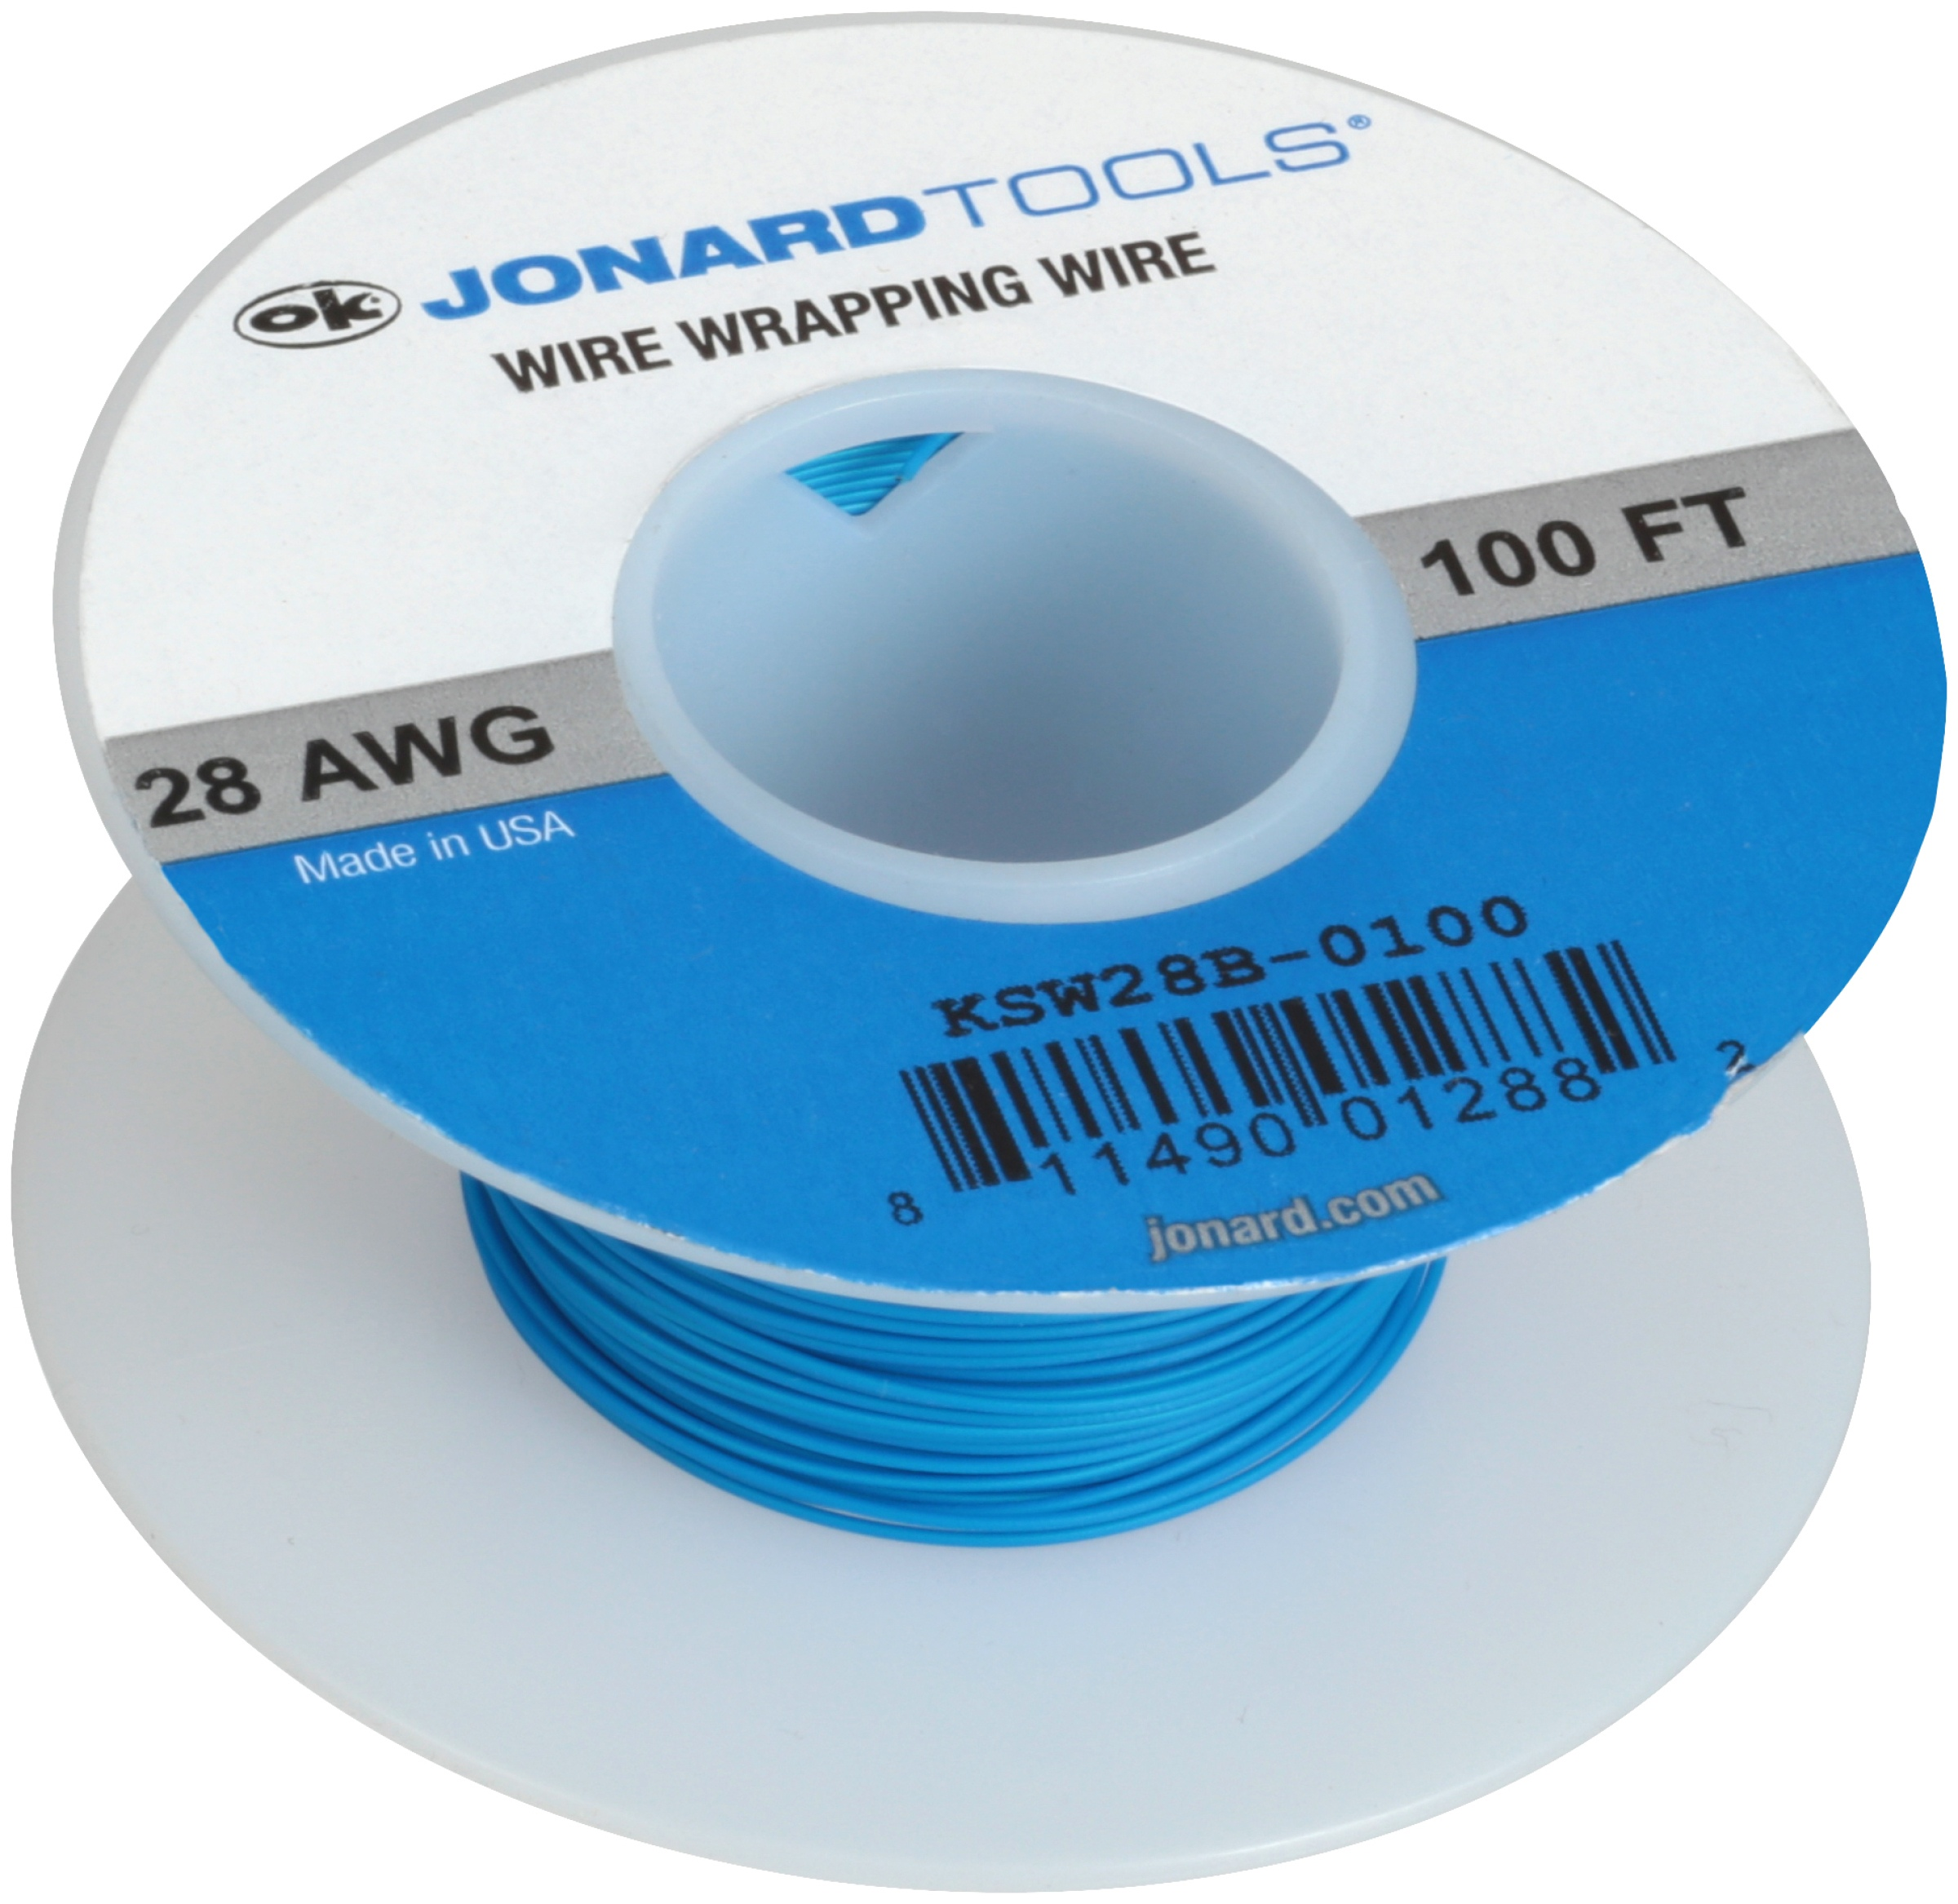 Jonard Tools® 28 AWG Wire Wrapping Wire 100 ft. Pack